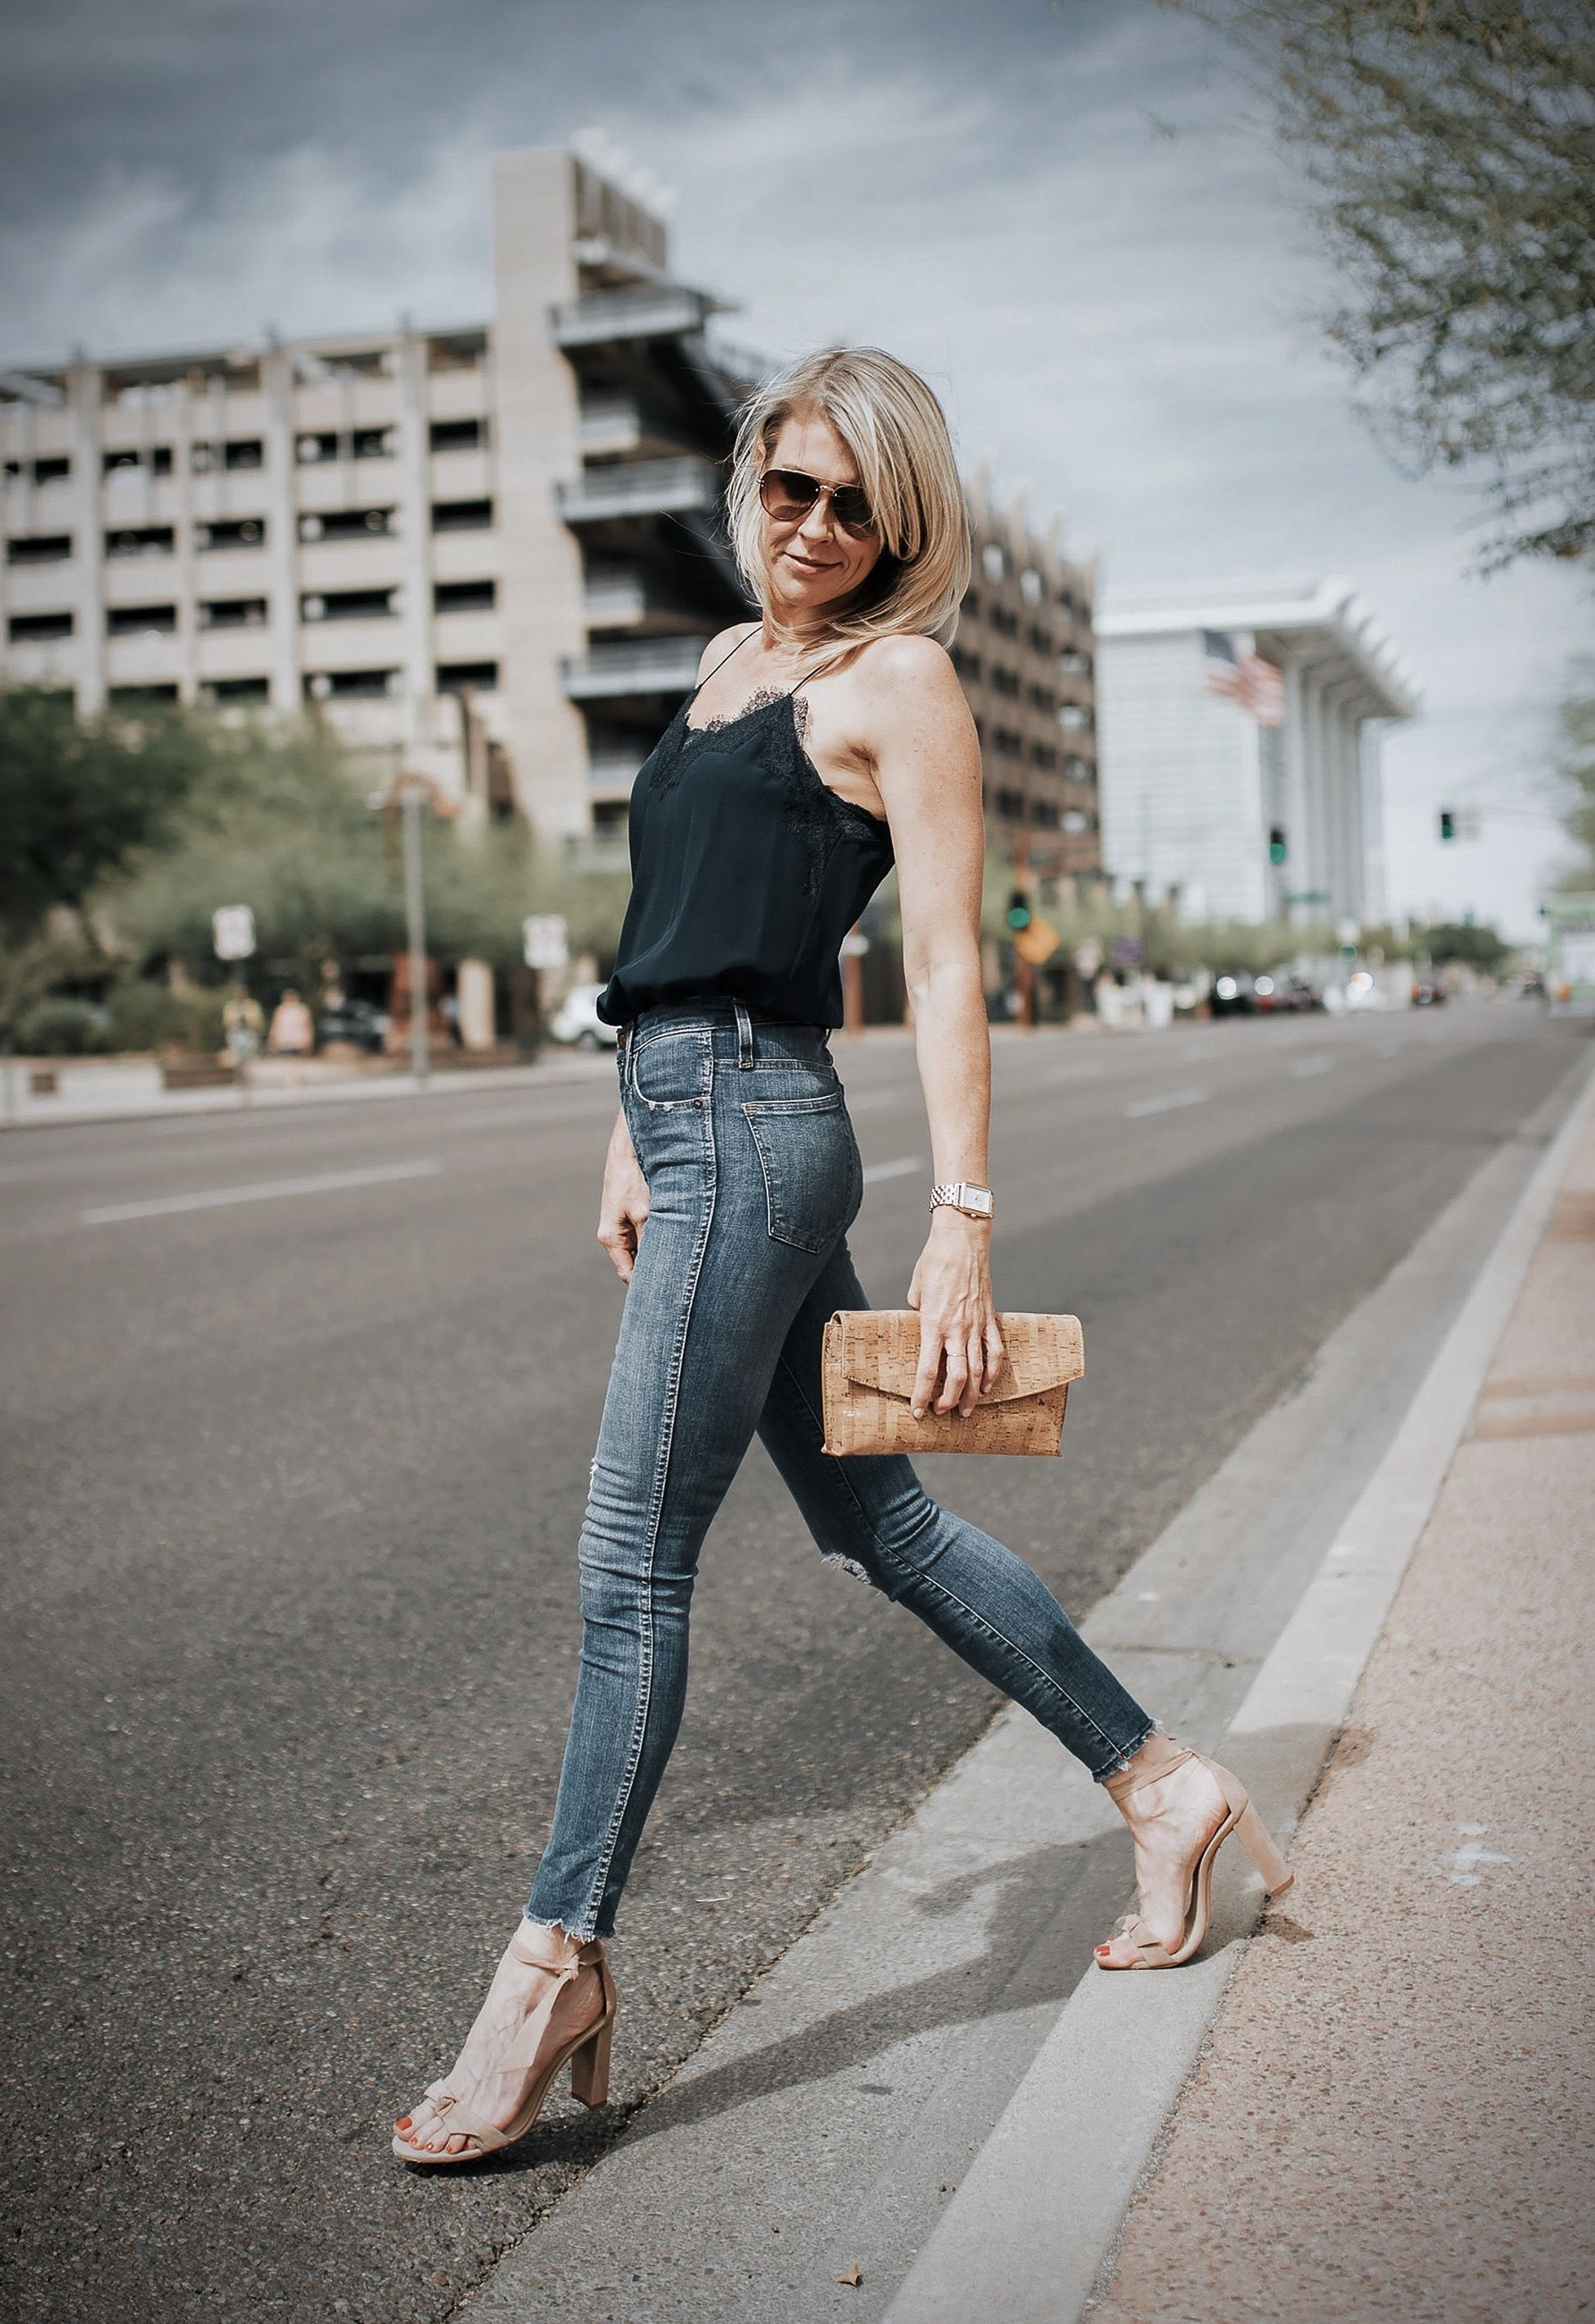 Summer first date outfit | Date night outfit, First date